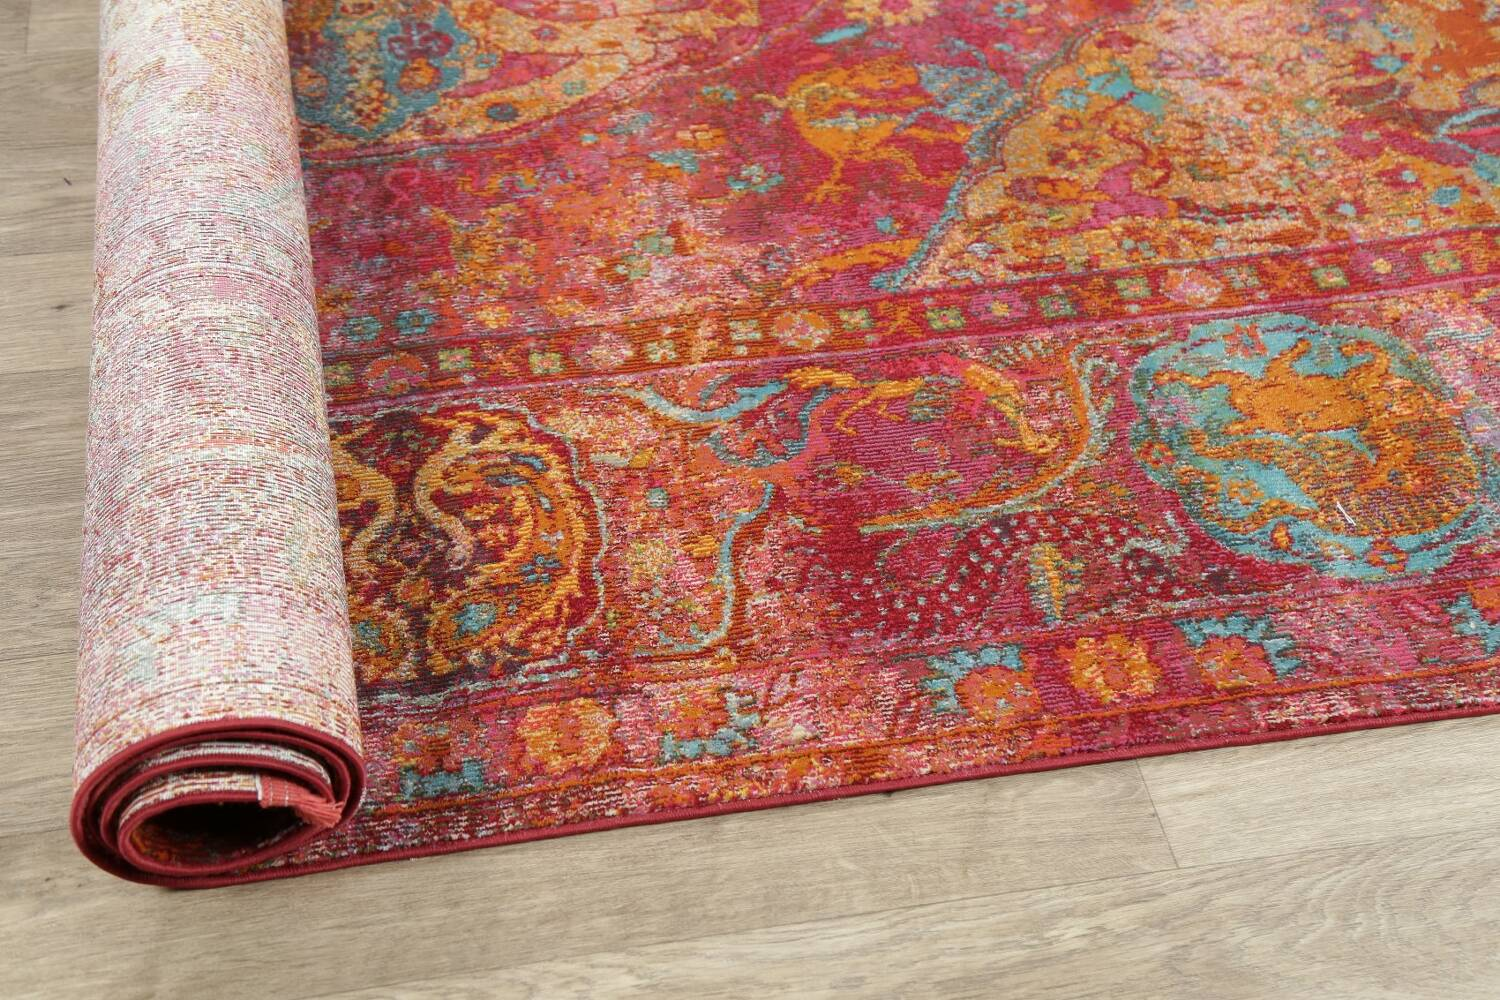 Hunting Design Pictorial Distressed Heat-Set Area Rugs image 5